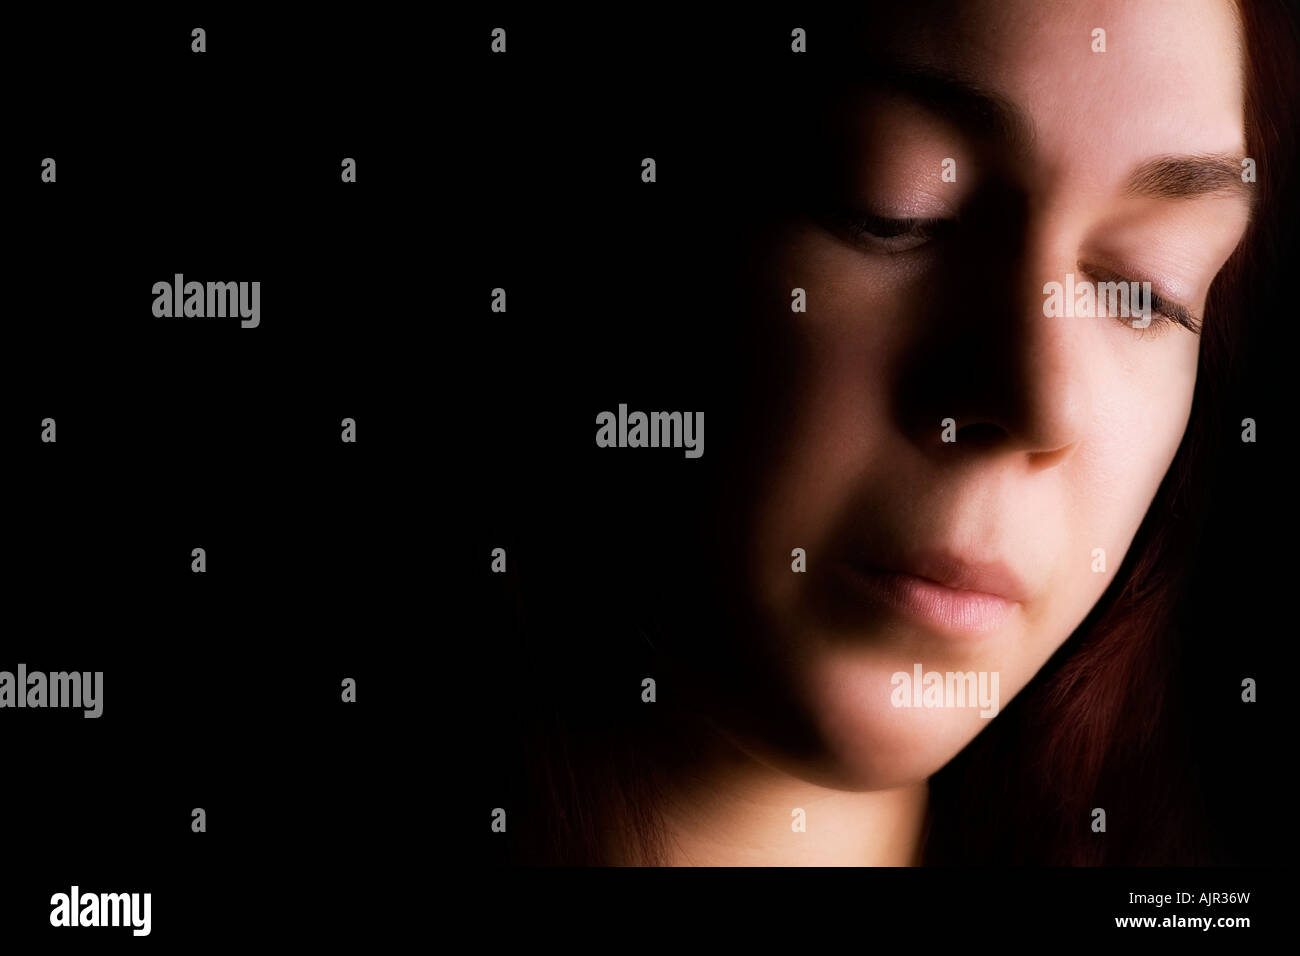 Face of young woman - Stock Image